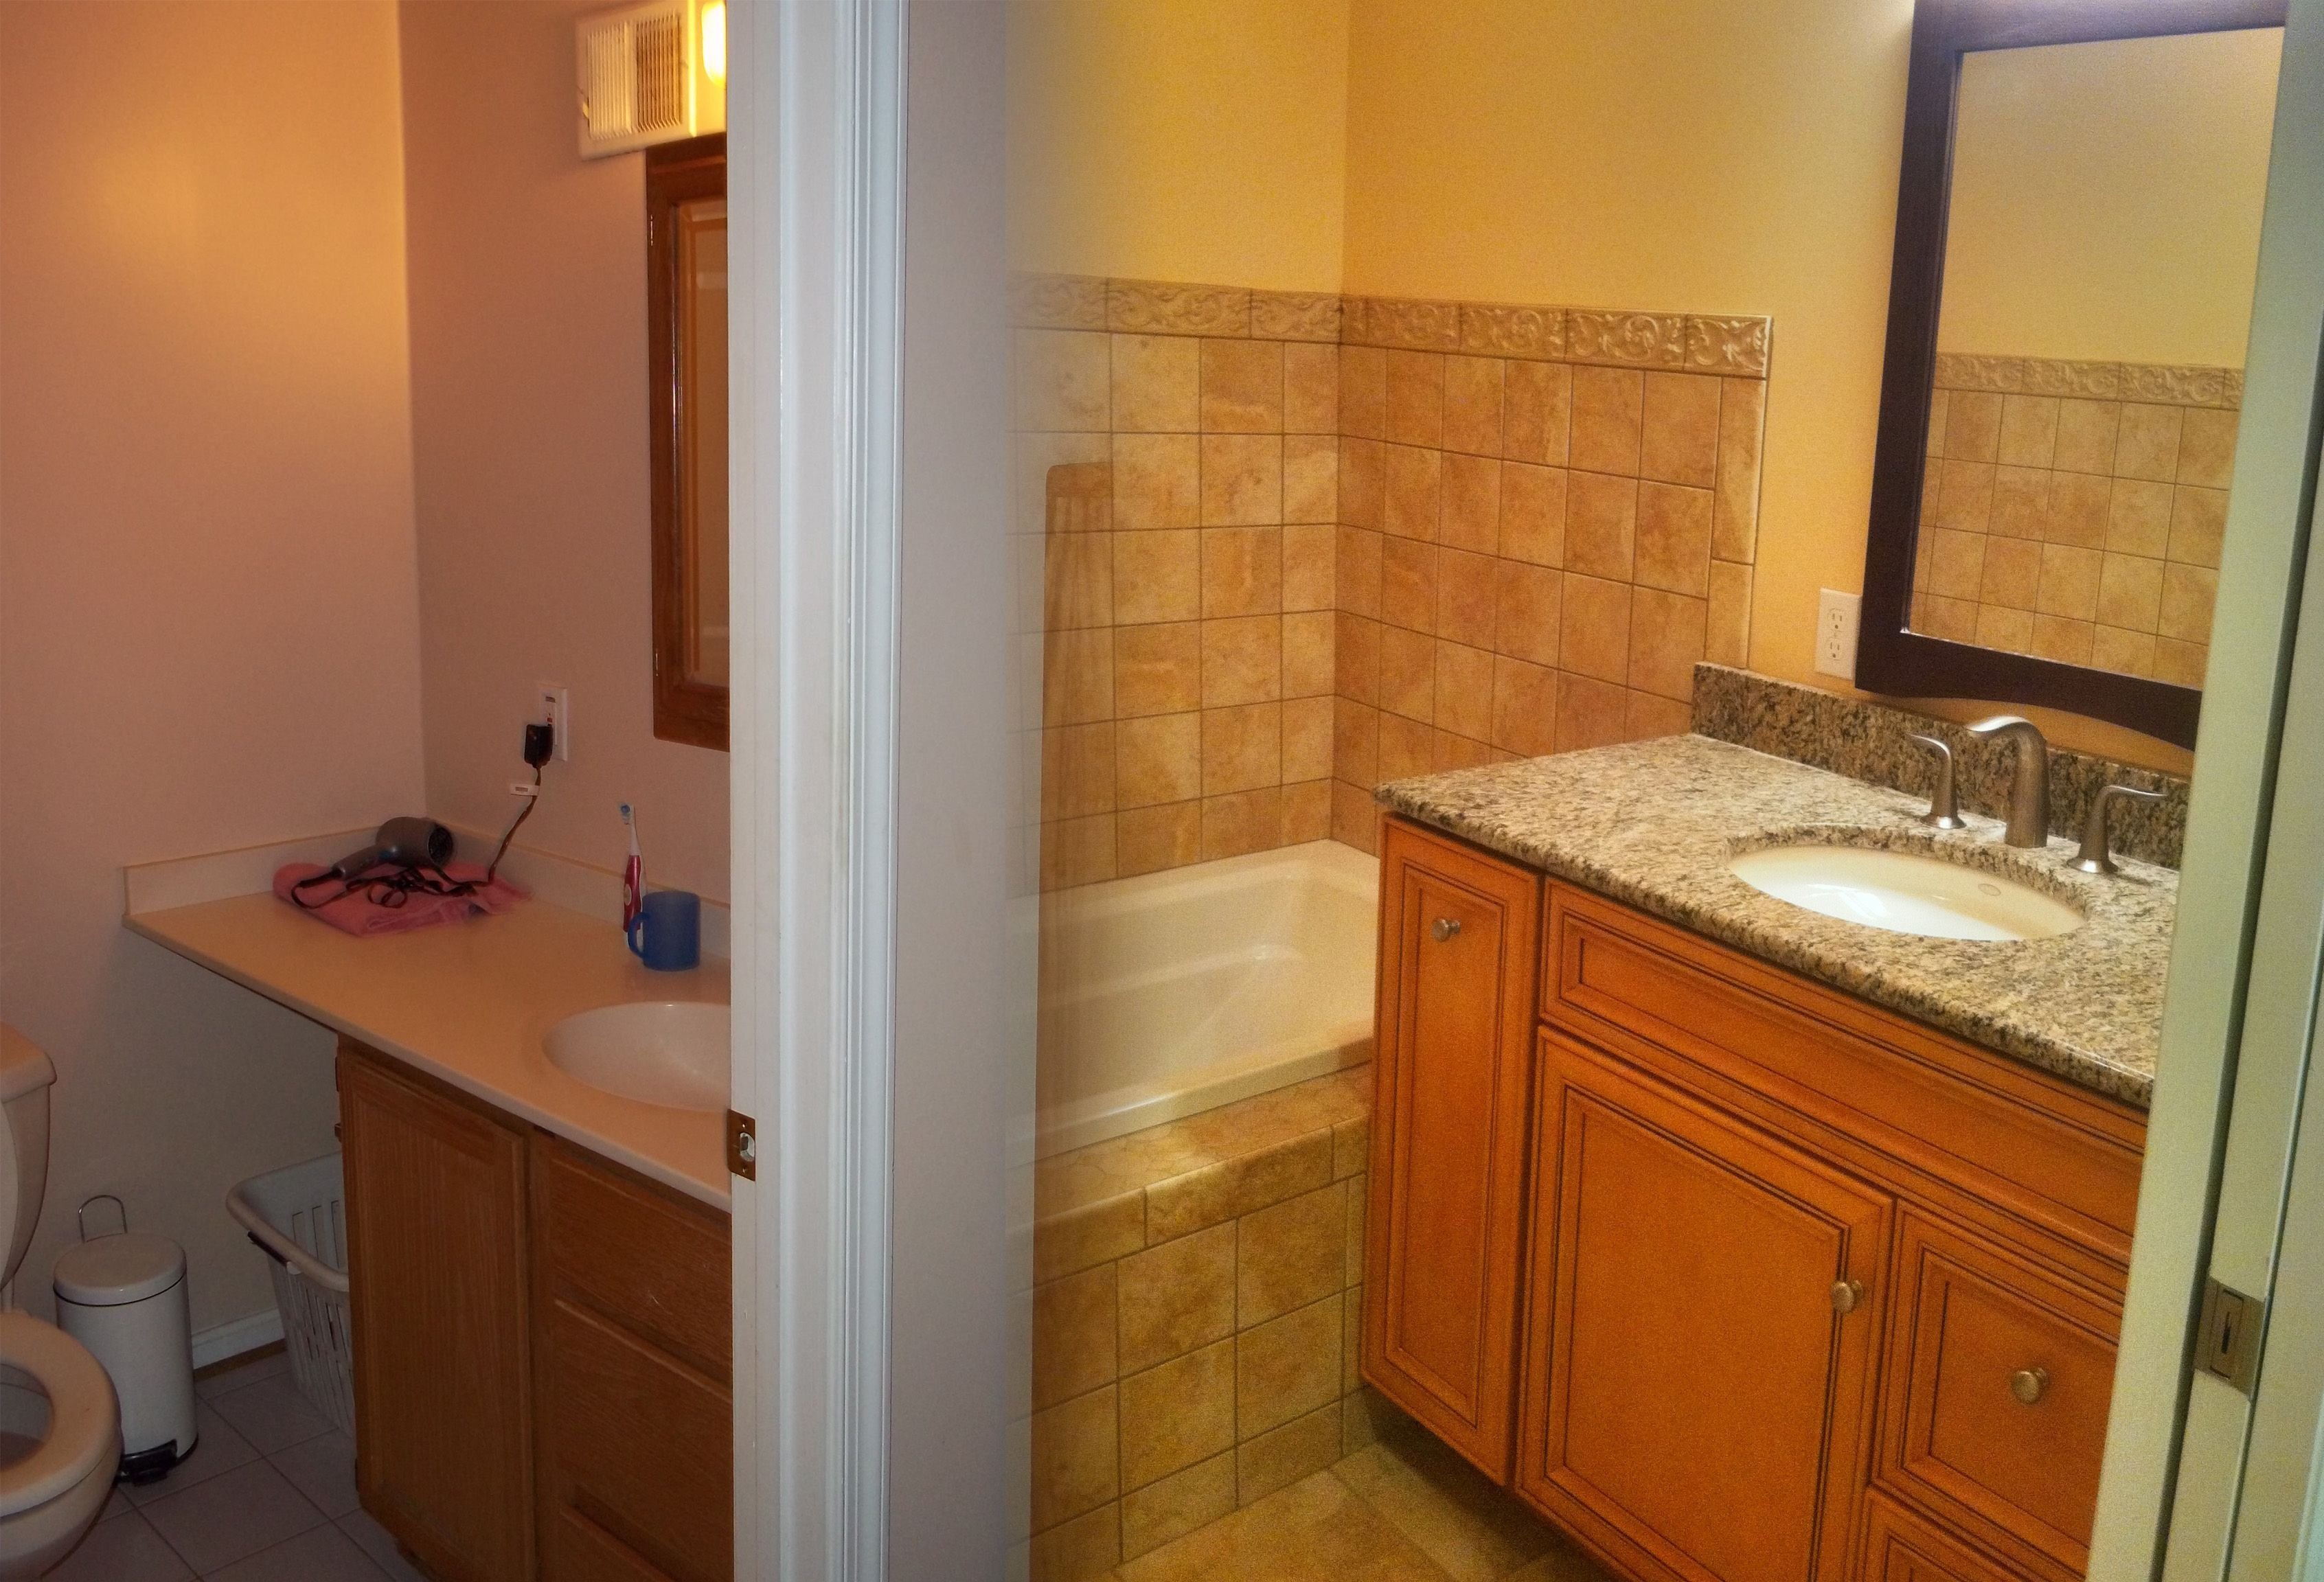 1960s Bathroom Renovation Before And After Bathroom Remodel Maryland Home Remodeling